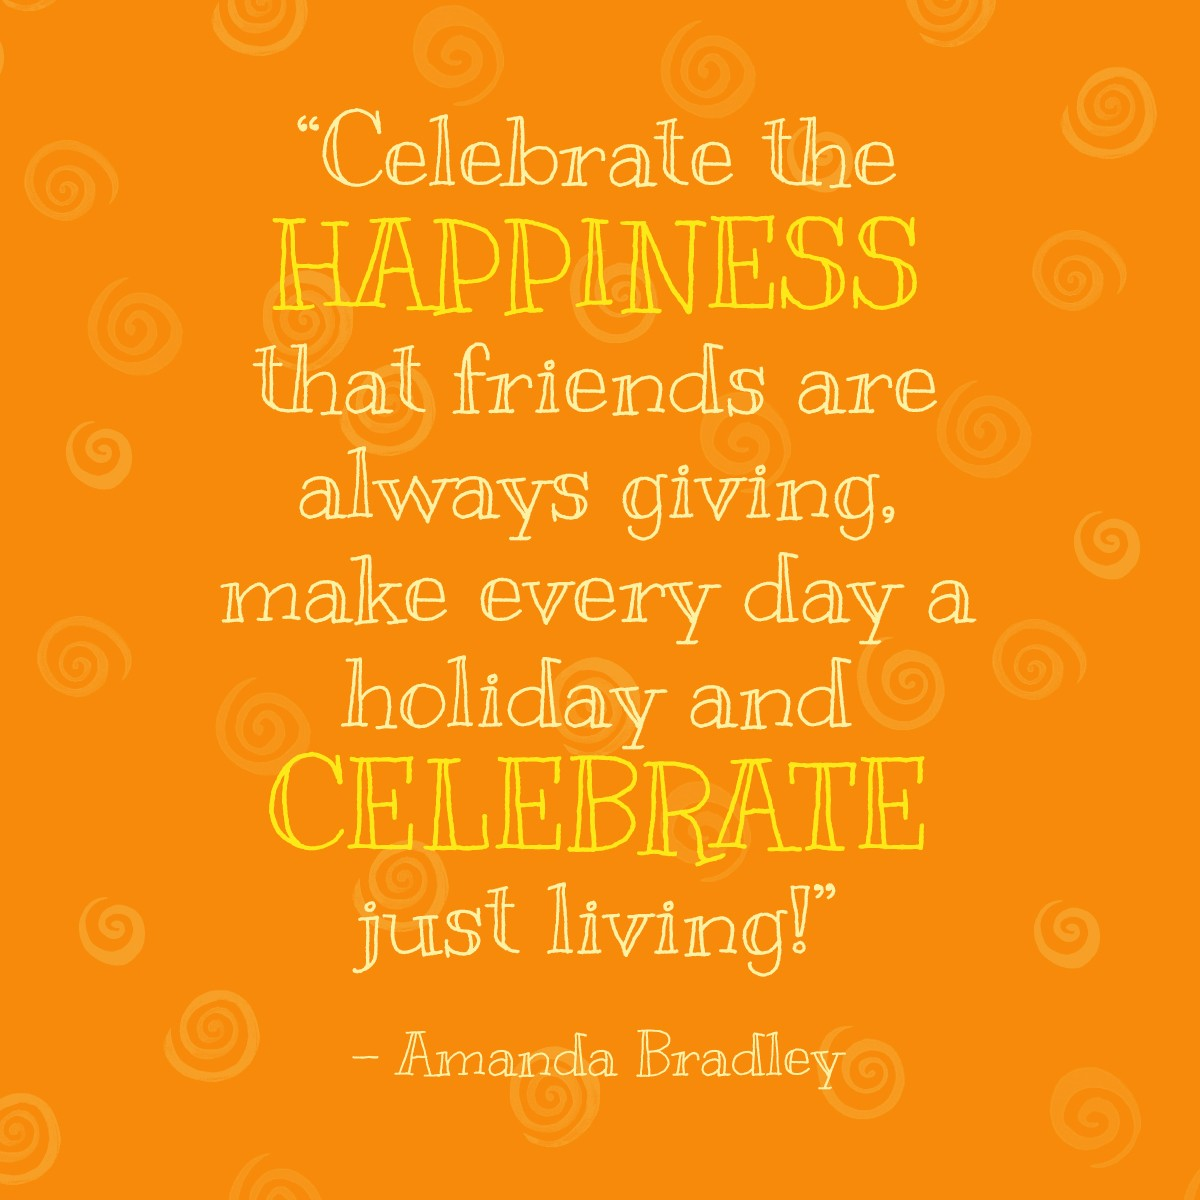 Celebrate the happiness that friends are always giving, make every day a holiday and celebrate just living! - Amanda Bradley | Thanksgiving.com